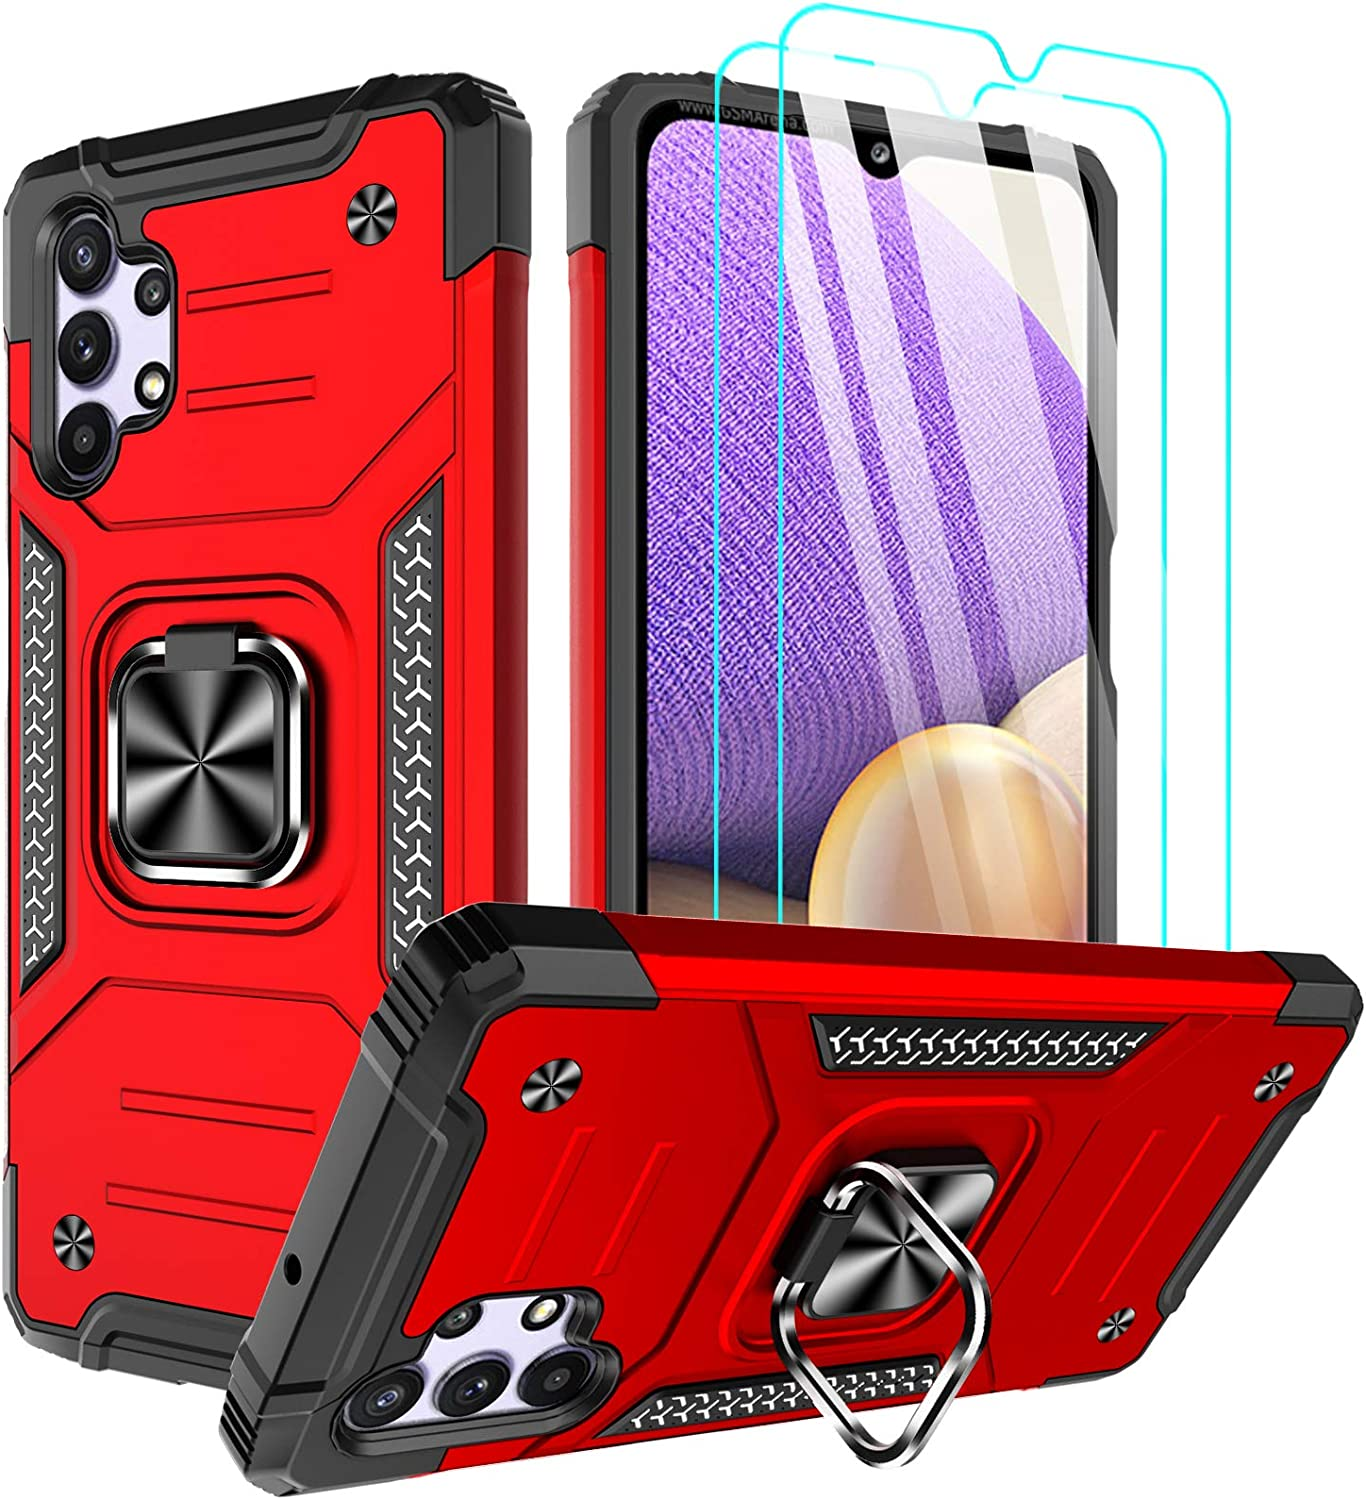 ChacXXLI for Samsung A32 5G Case, Samsung Galaxy A32 5G Case with [2 Pack] Tempered Glass Screen Protector, Rotating Ring Kickstand Impact Resistant Phone Case for Galaxy A32 5G - Red